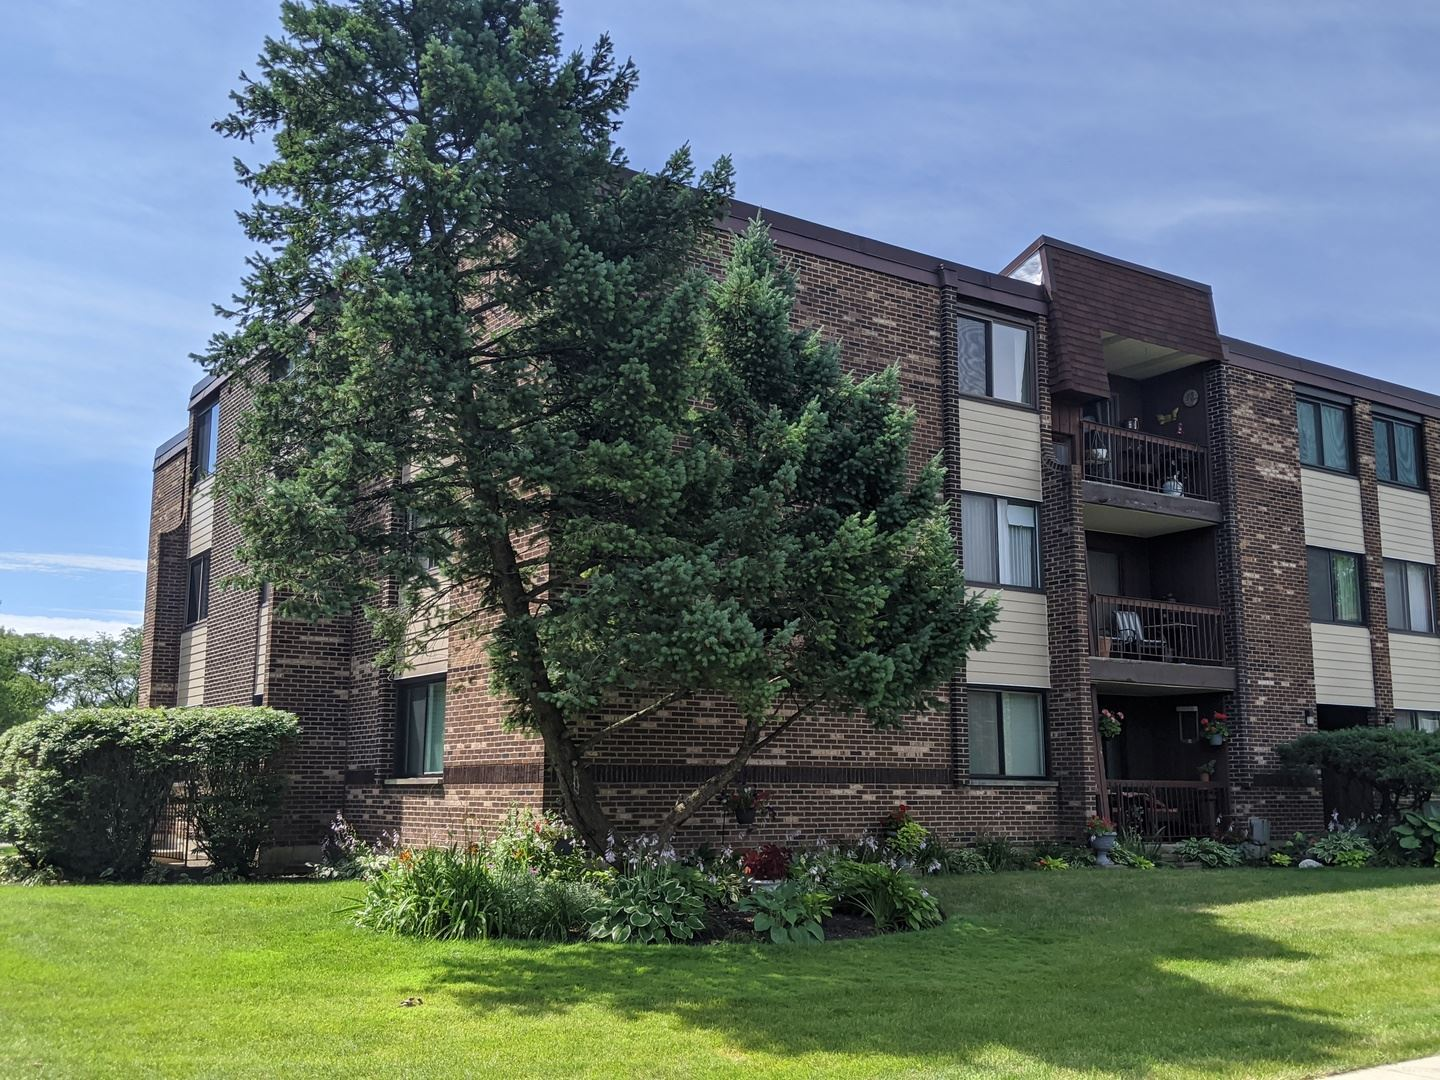 460 Raintree Court #460-1A, Glen Ellyn, IL 60137 - #: 10789508